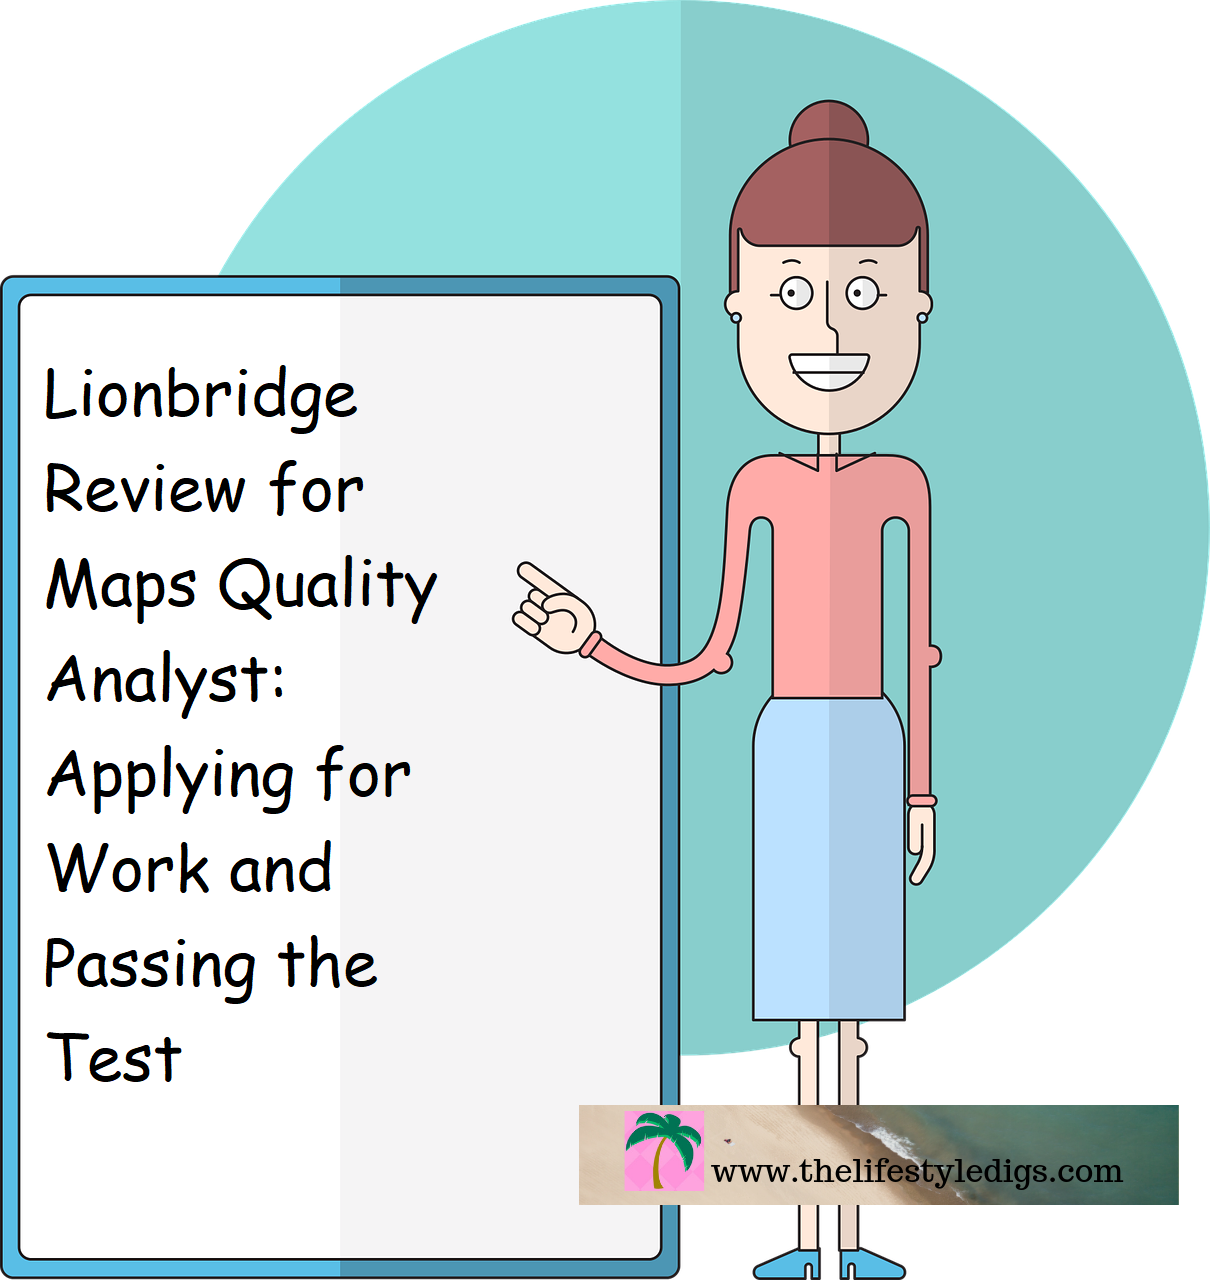 Lionbridge Review for Maps Quality Analyst: Applying for Work and Passing the Test